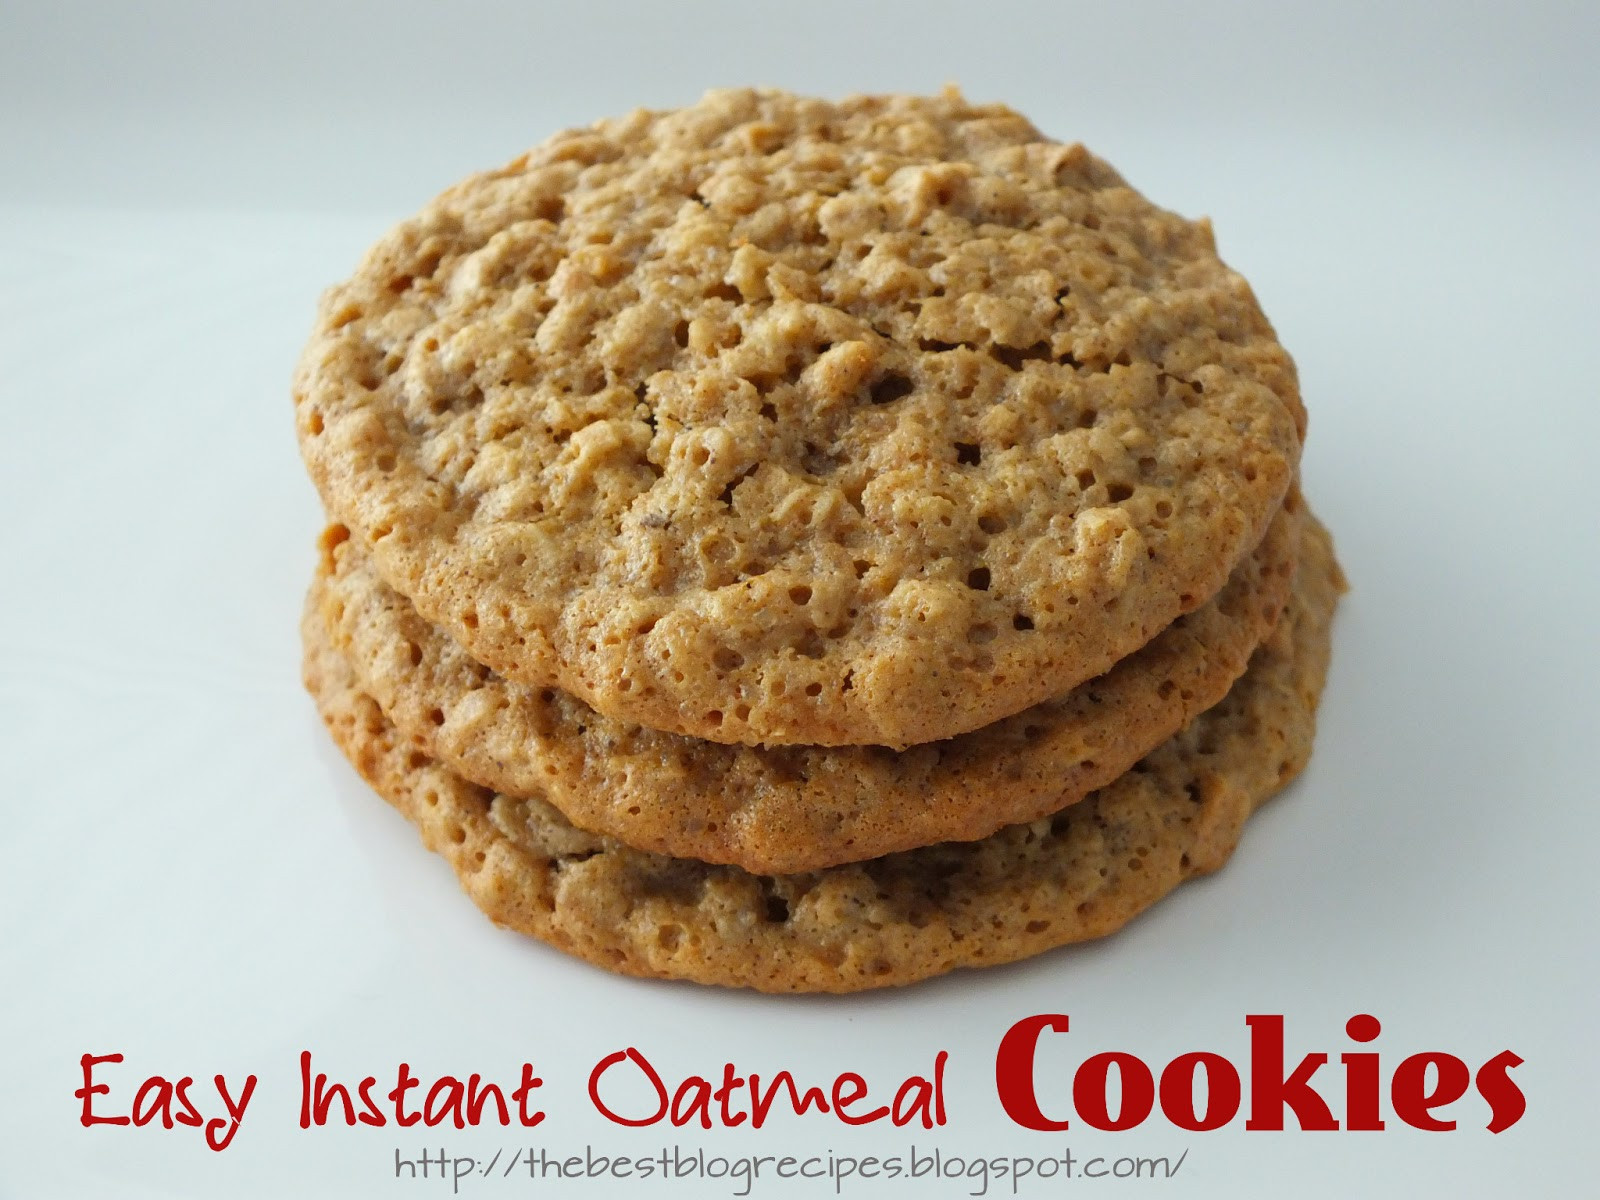 Easy Oatmeal Cookies  The Best Blog Recipes Easy Instant Oatmeal Cookies